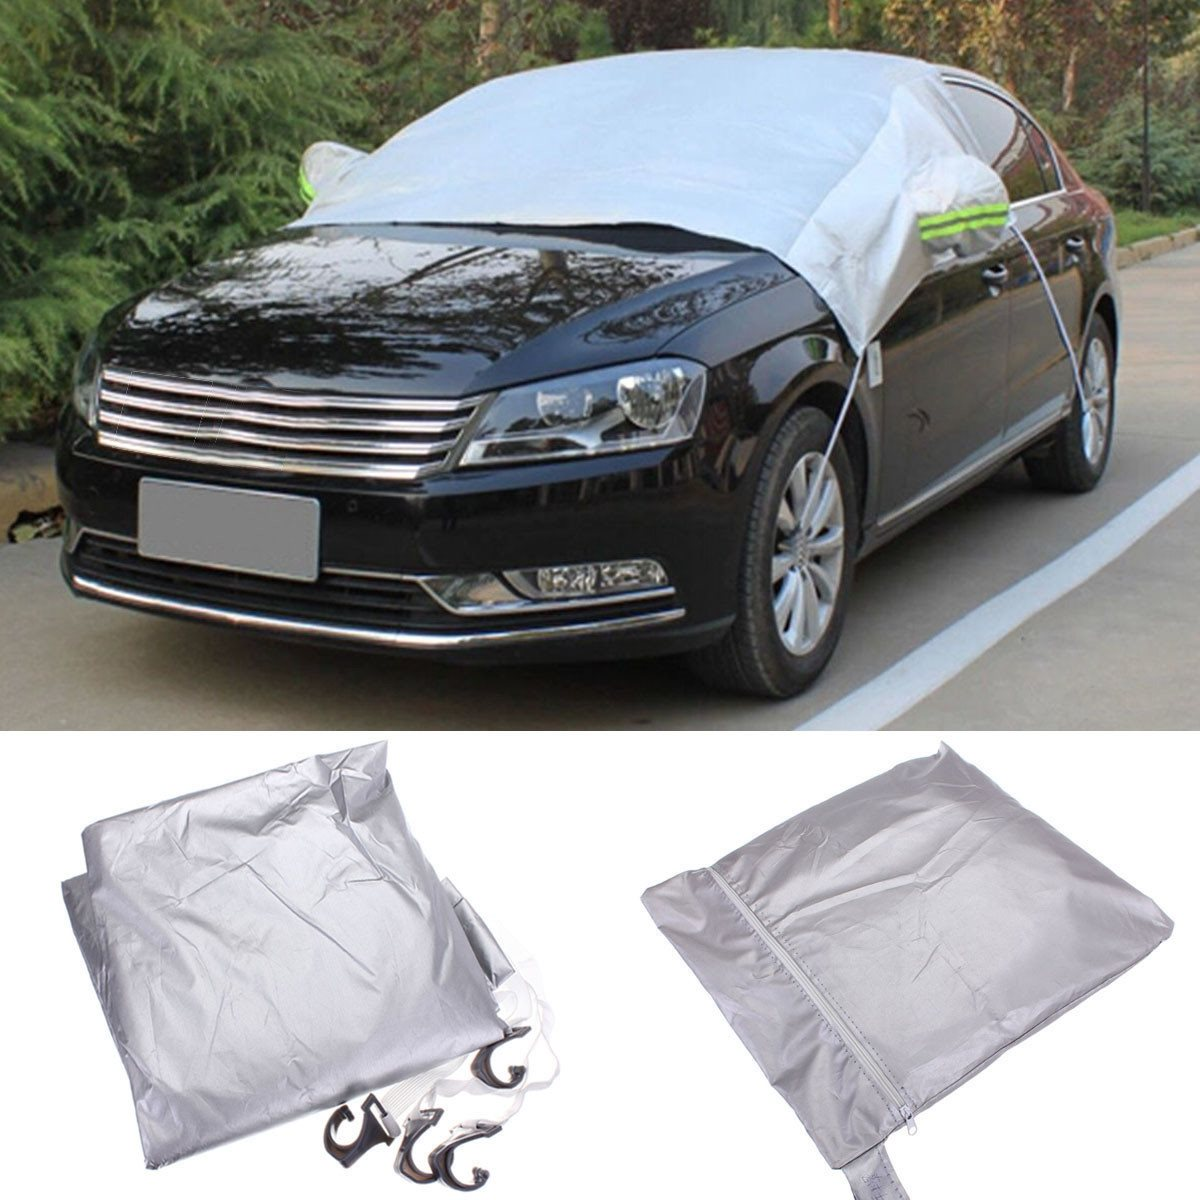 238x169cm Car Windscreen Cover Heat Sun Shade Anti Snow Frost Ice Shield Dust Protector Universal(China)